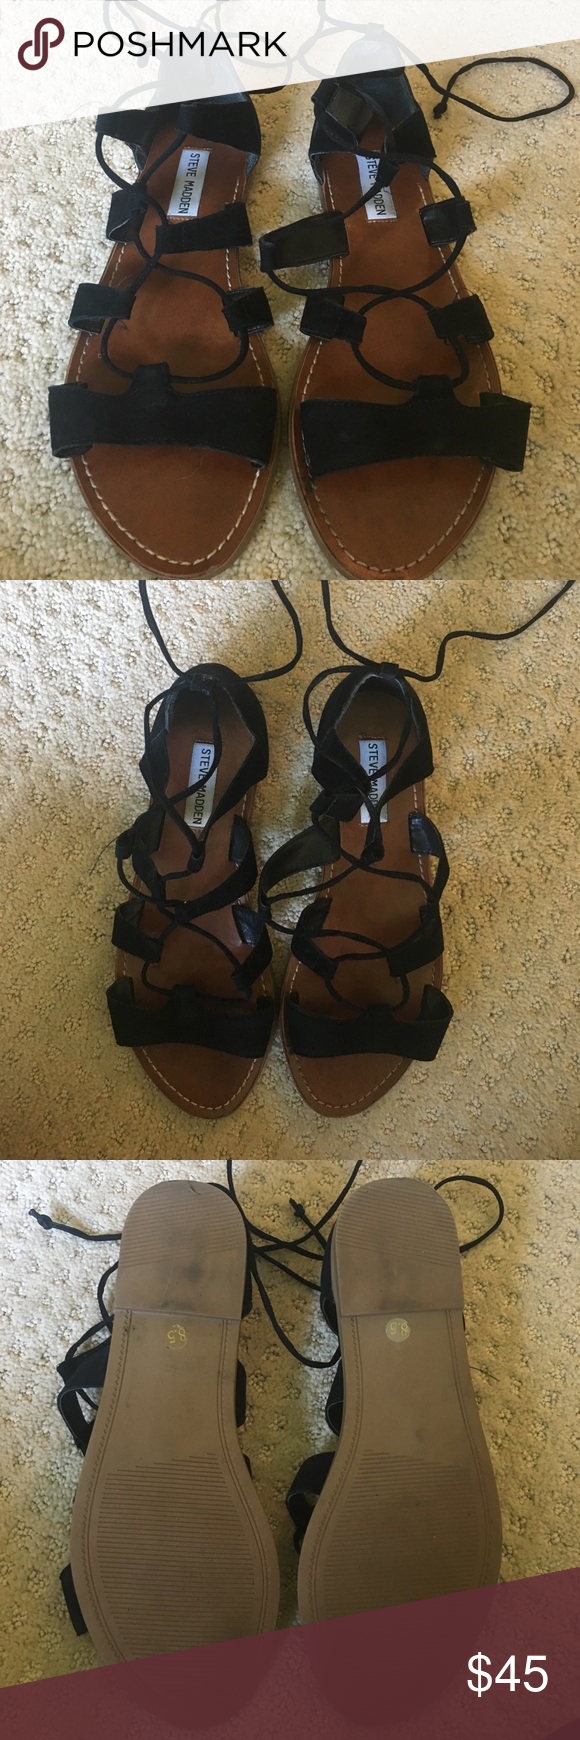 Steve Madden lace up sandals Steve Madden lace up sandals! In nearly perfect condition, only worn twice, and super cute for summer! Steve Madden Shoes Sandals